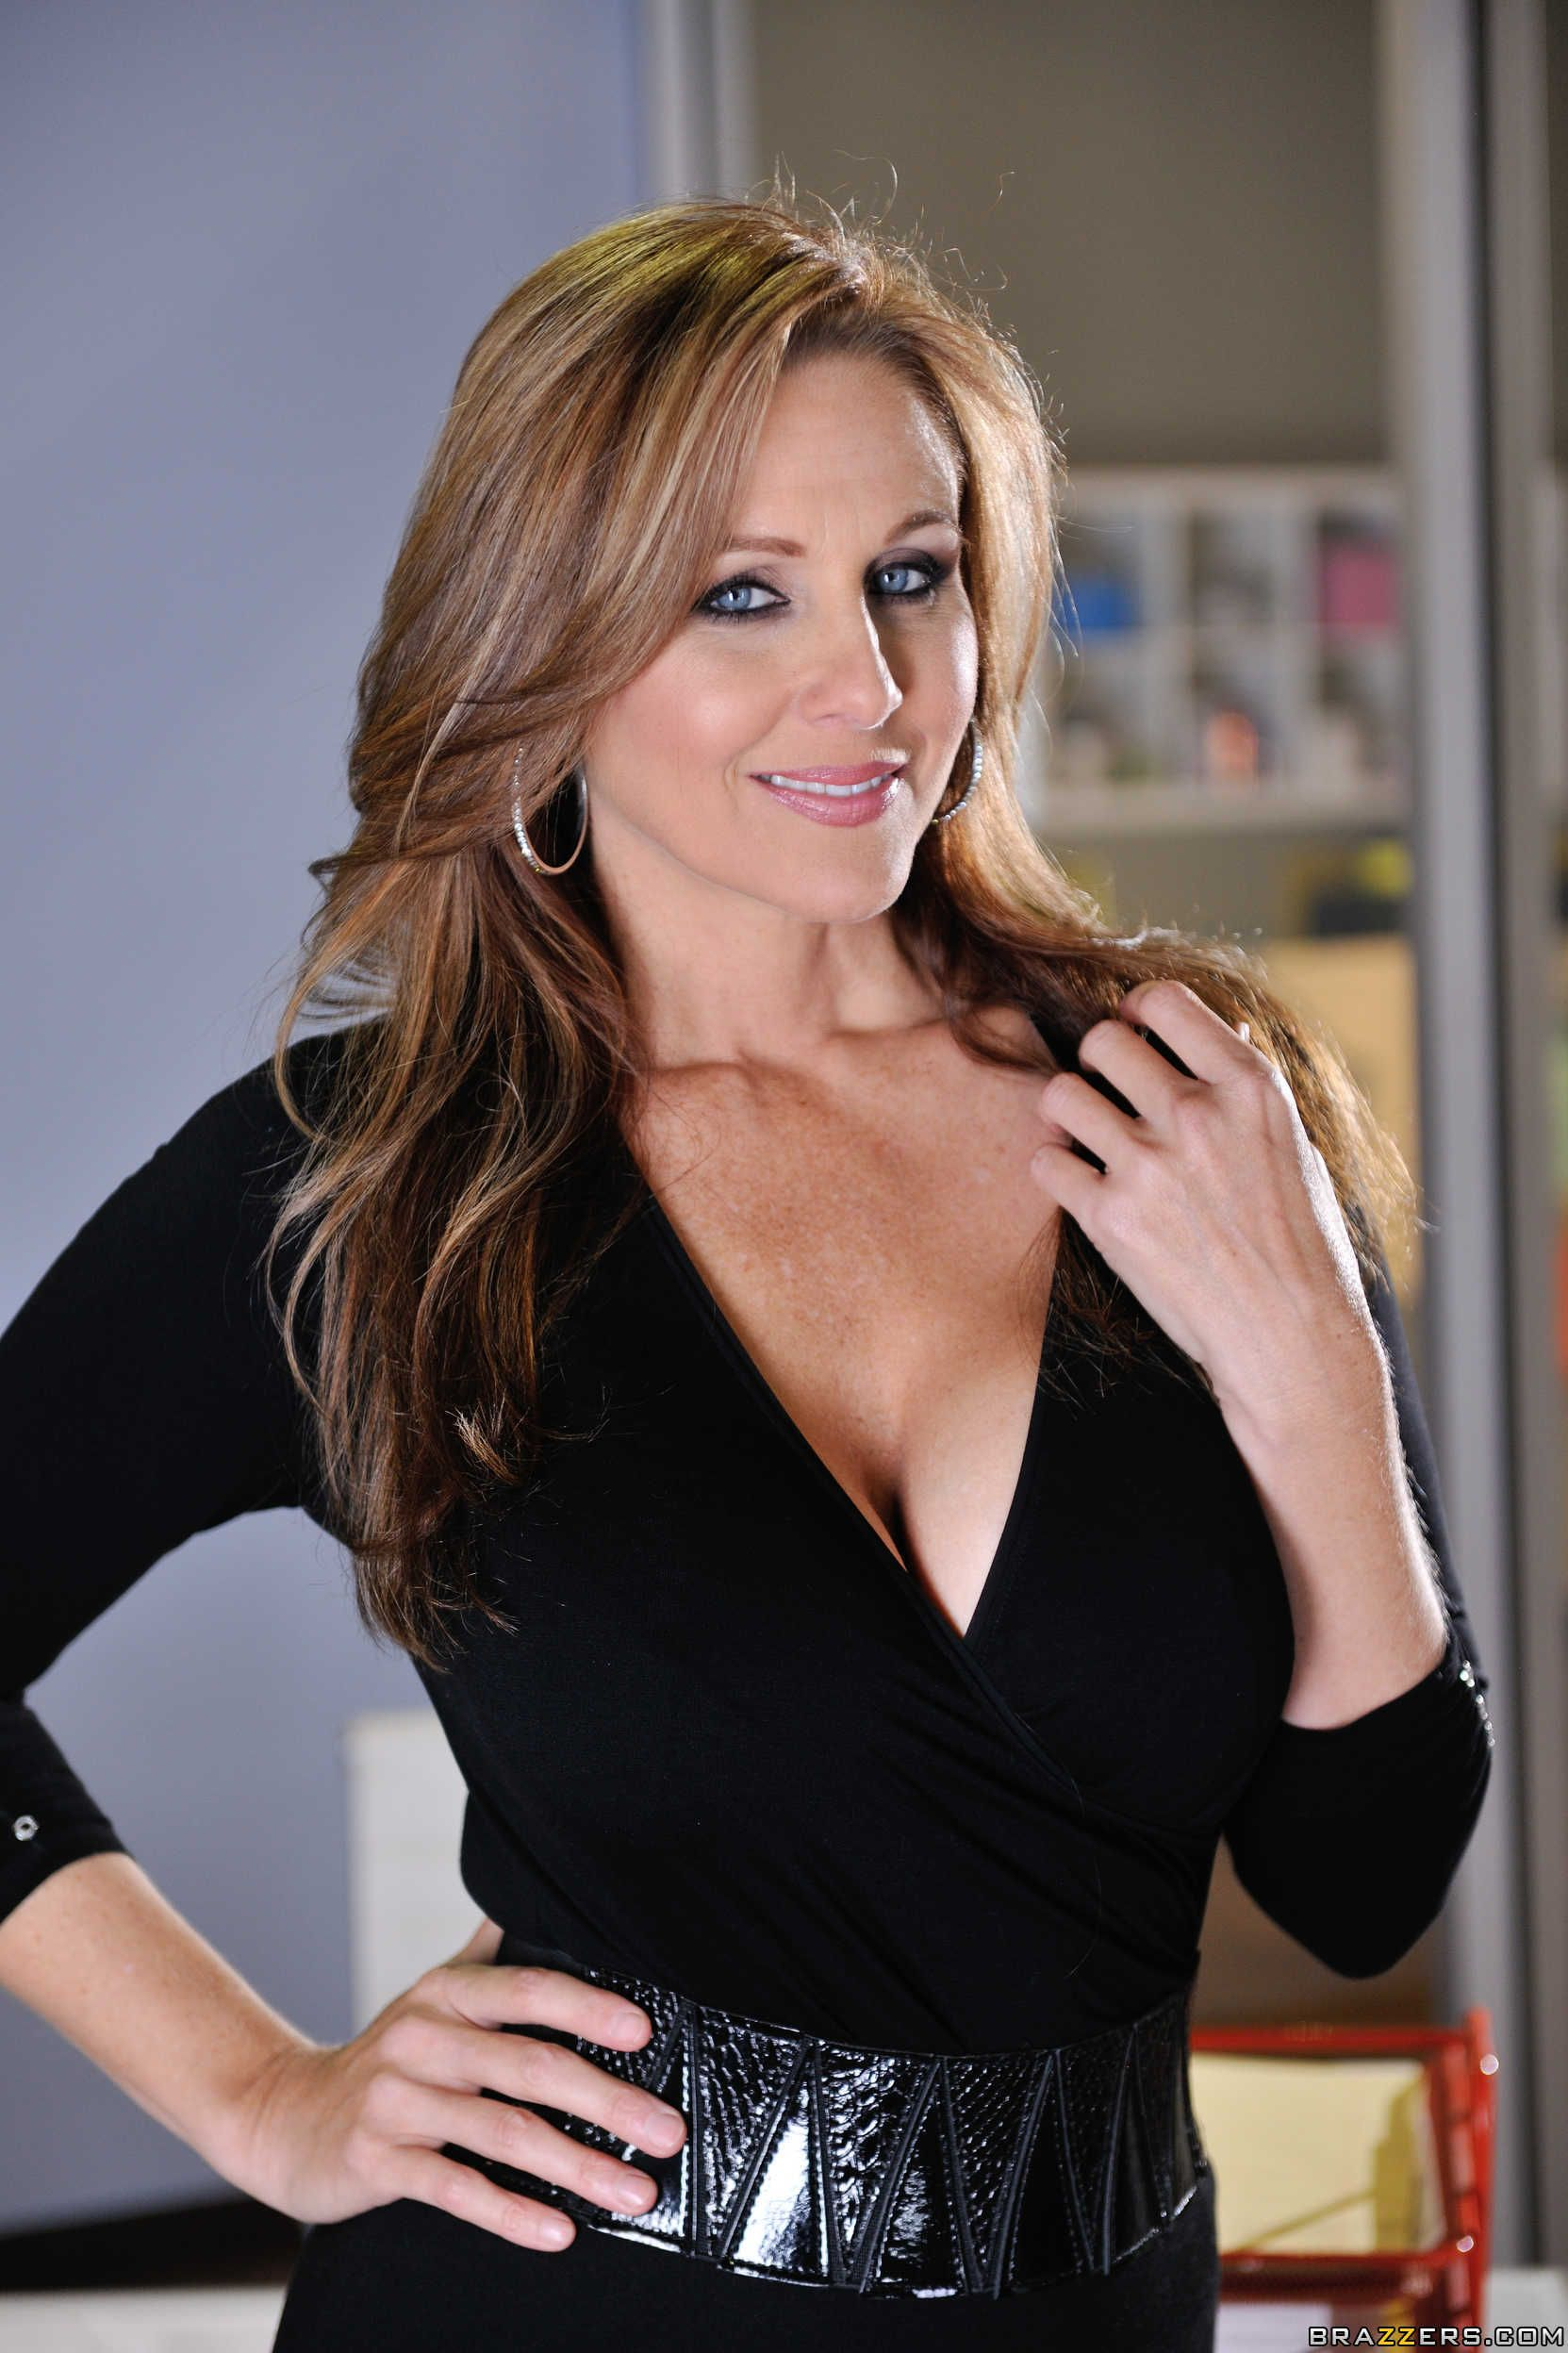 julia ann and olivia austin disciplinary action julia ann and olivia austin. Black Bedroom Furniture Sets. Home Design Ideas